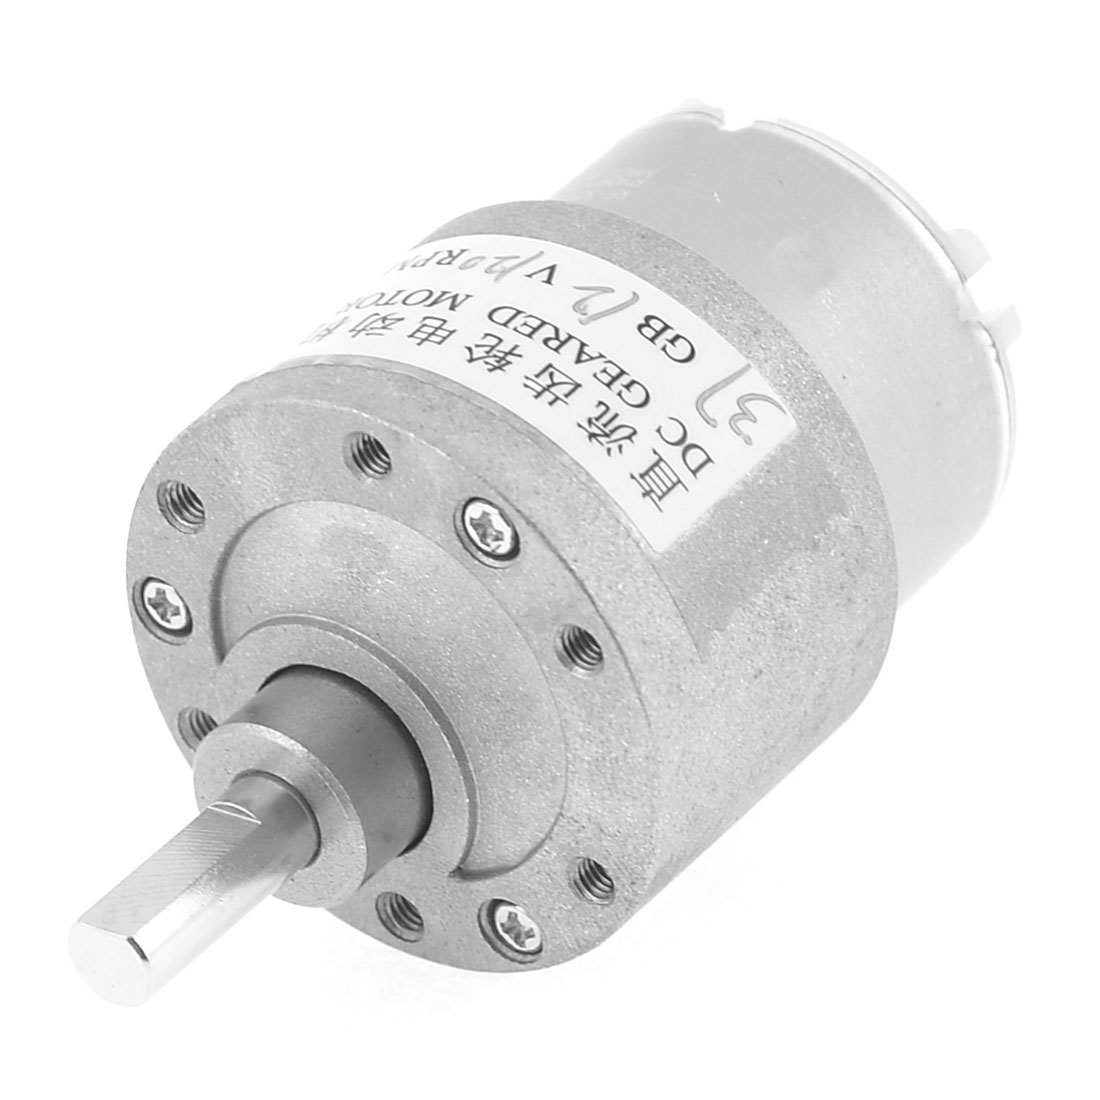 120RPM 6mm Shaft Dia 2 Terminals Electric Gearbox Geared Motor 12VDC - image 1 of 1